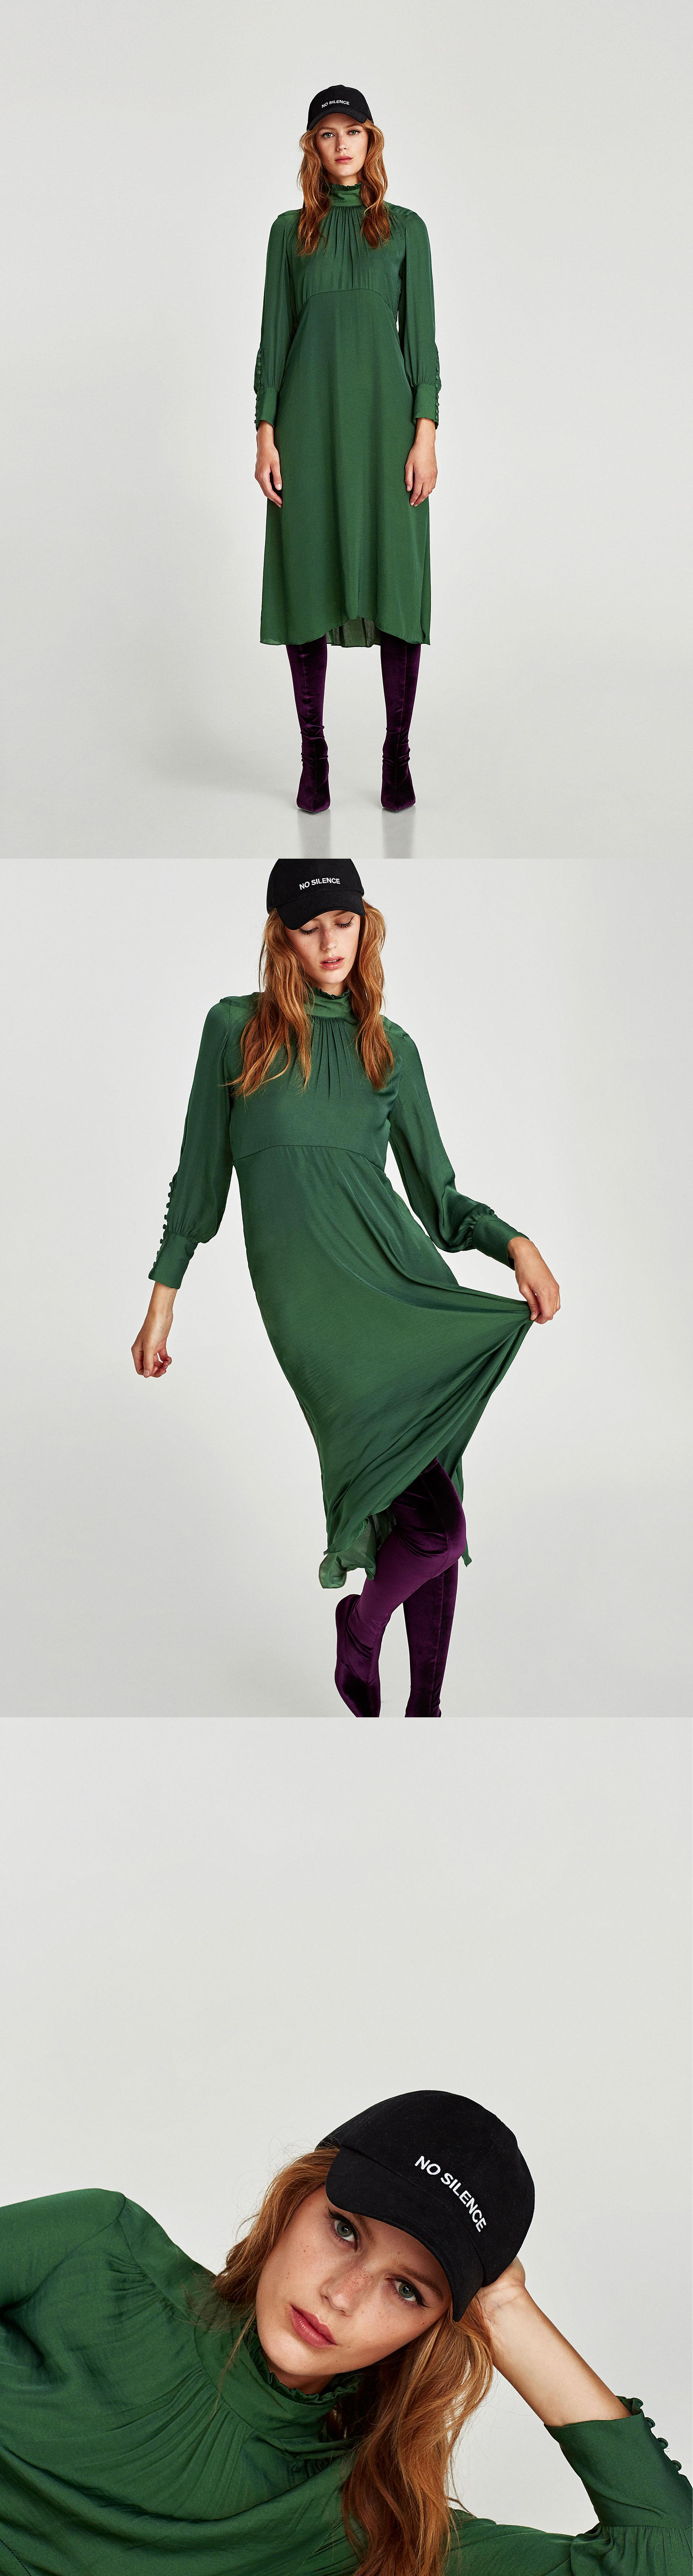 0df3a54d Flowing Midi Dress With Long Sleeves // 89.90 USD // Zara // Flowing midi  dress with high collar, long sleeves and lined buttons on the cuffs and on  the ...